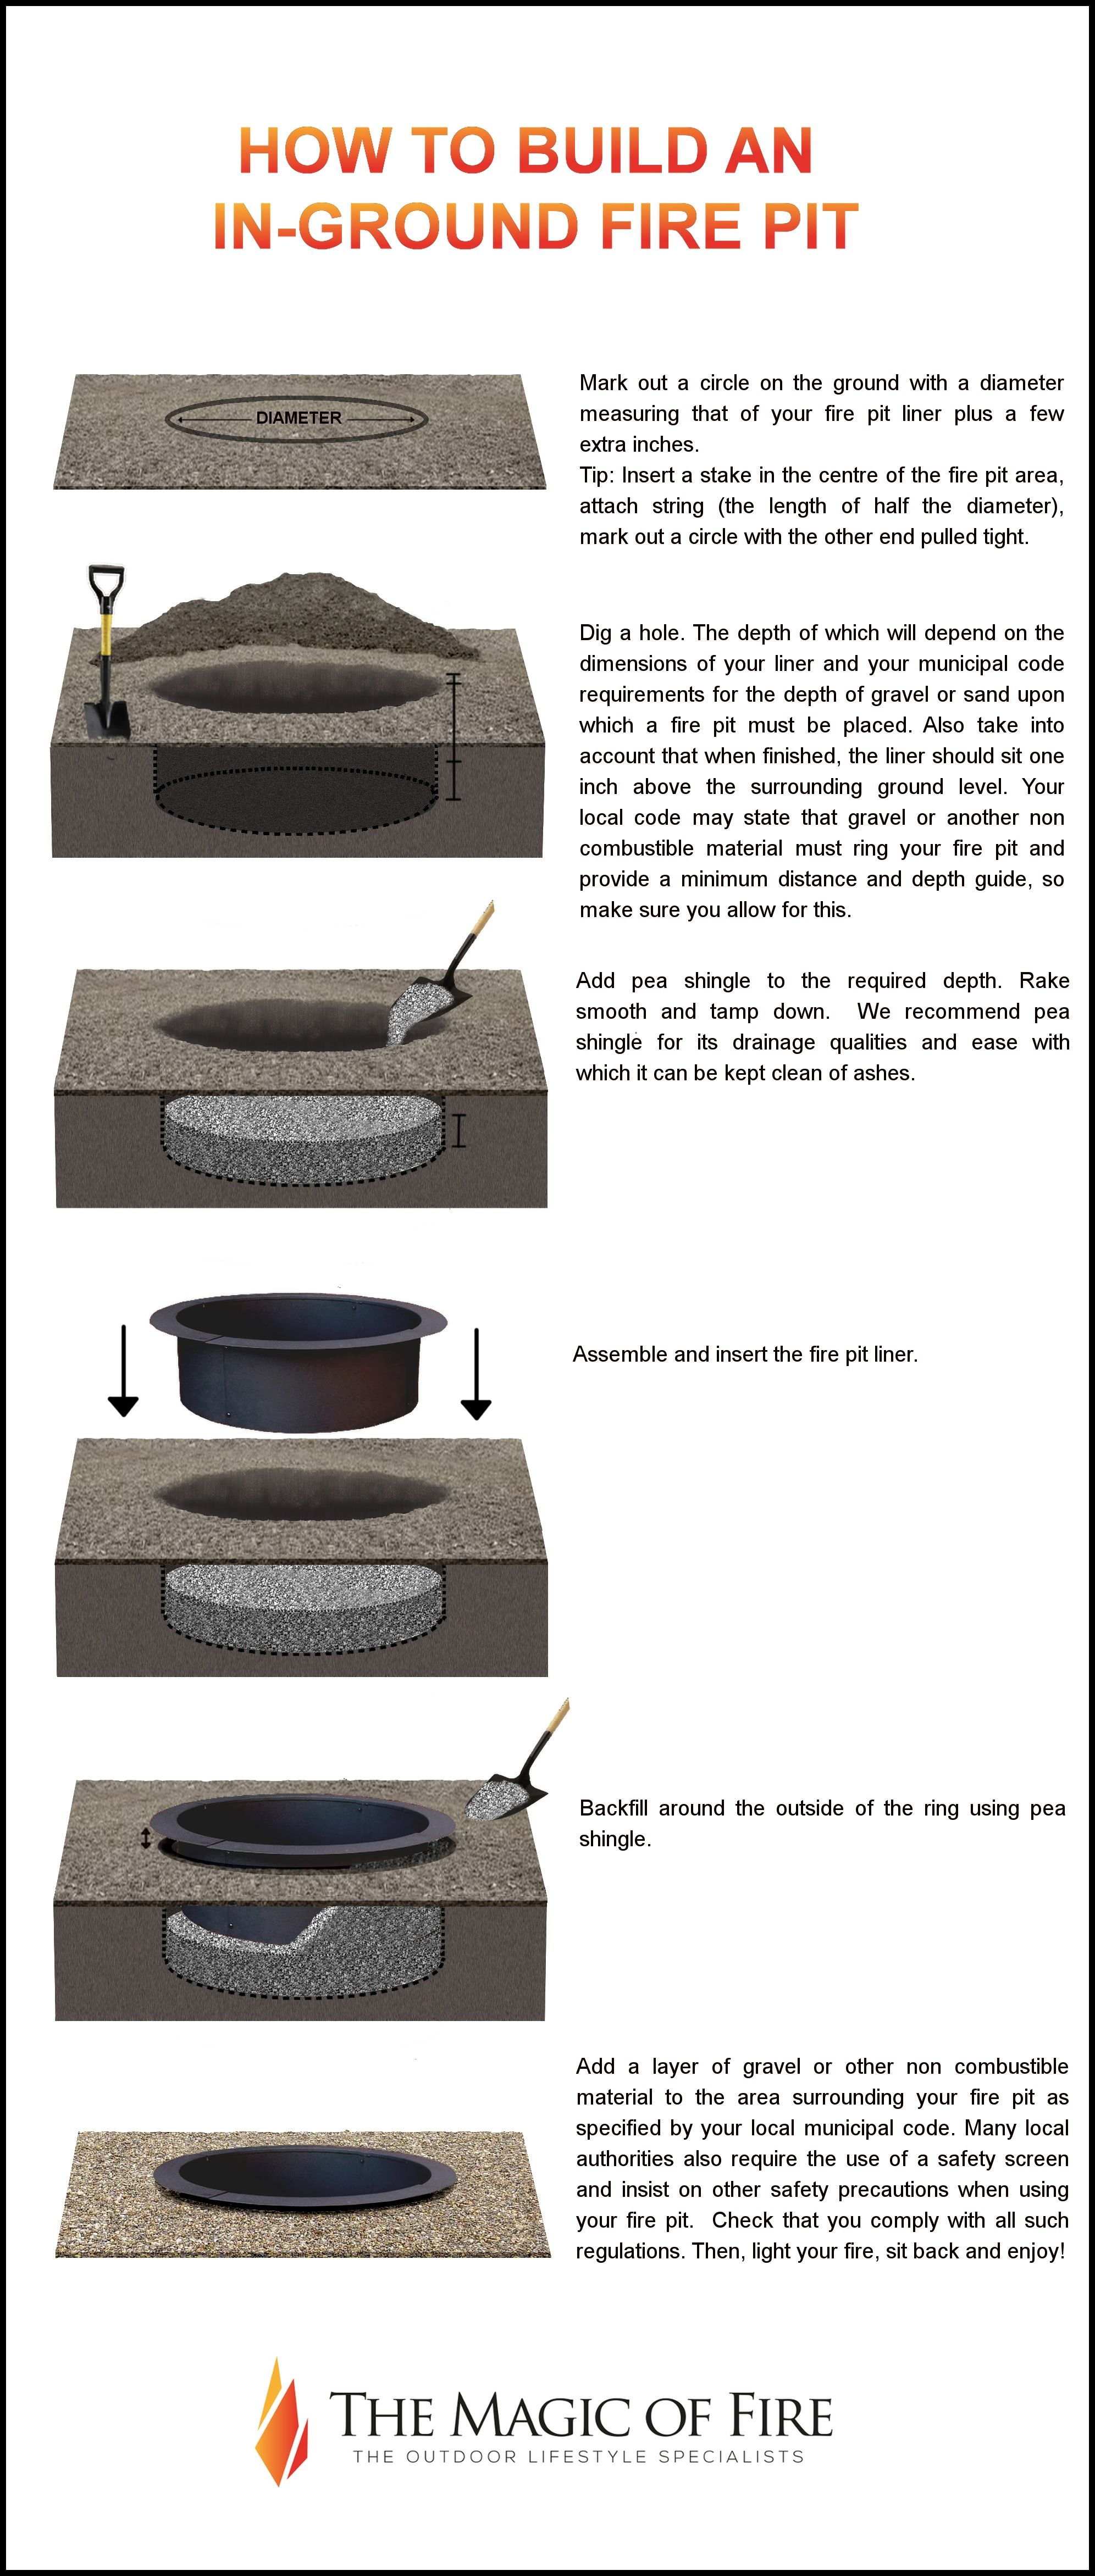 how to build an in ground fire pit using a fire pit liner firepit